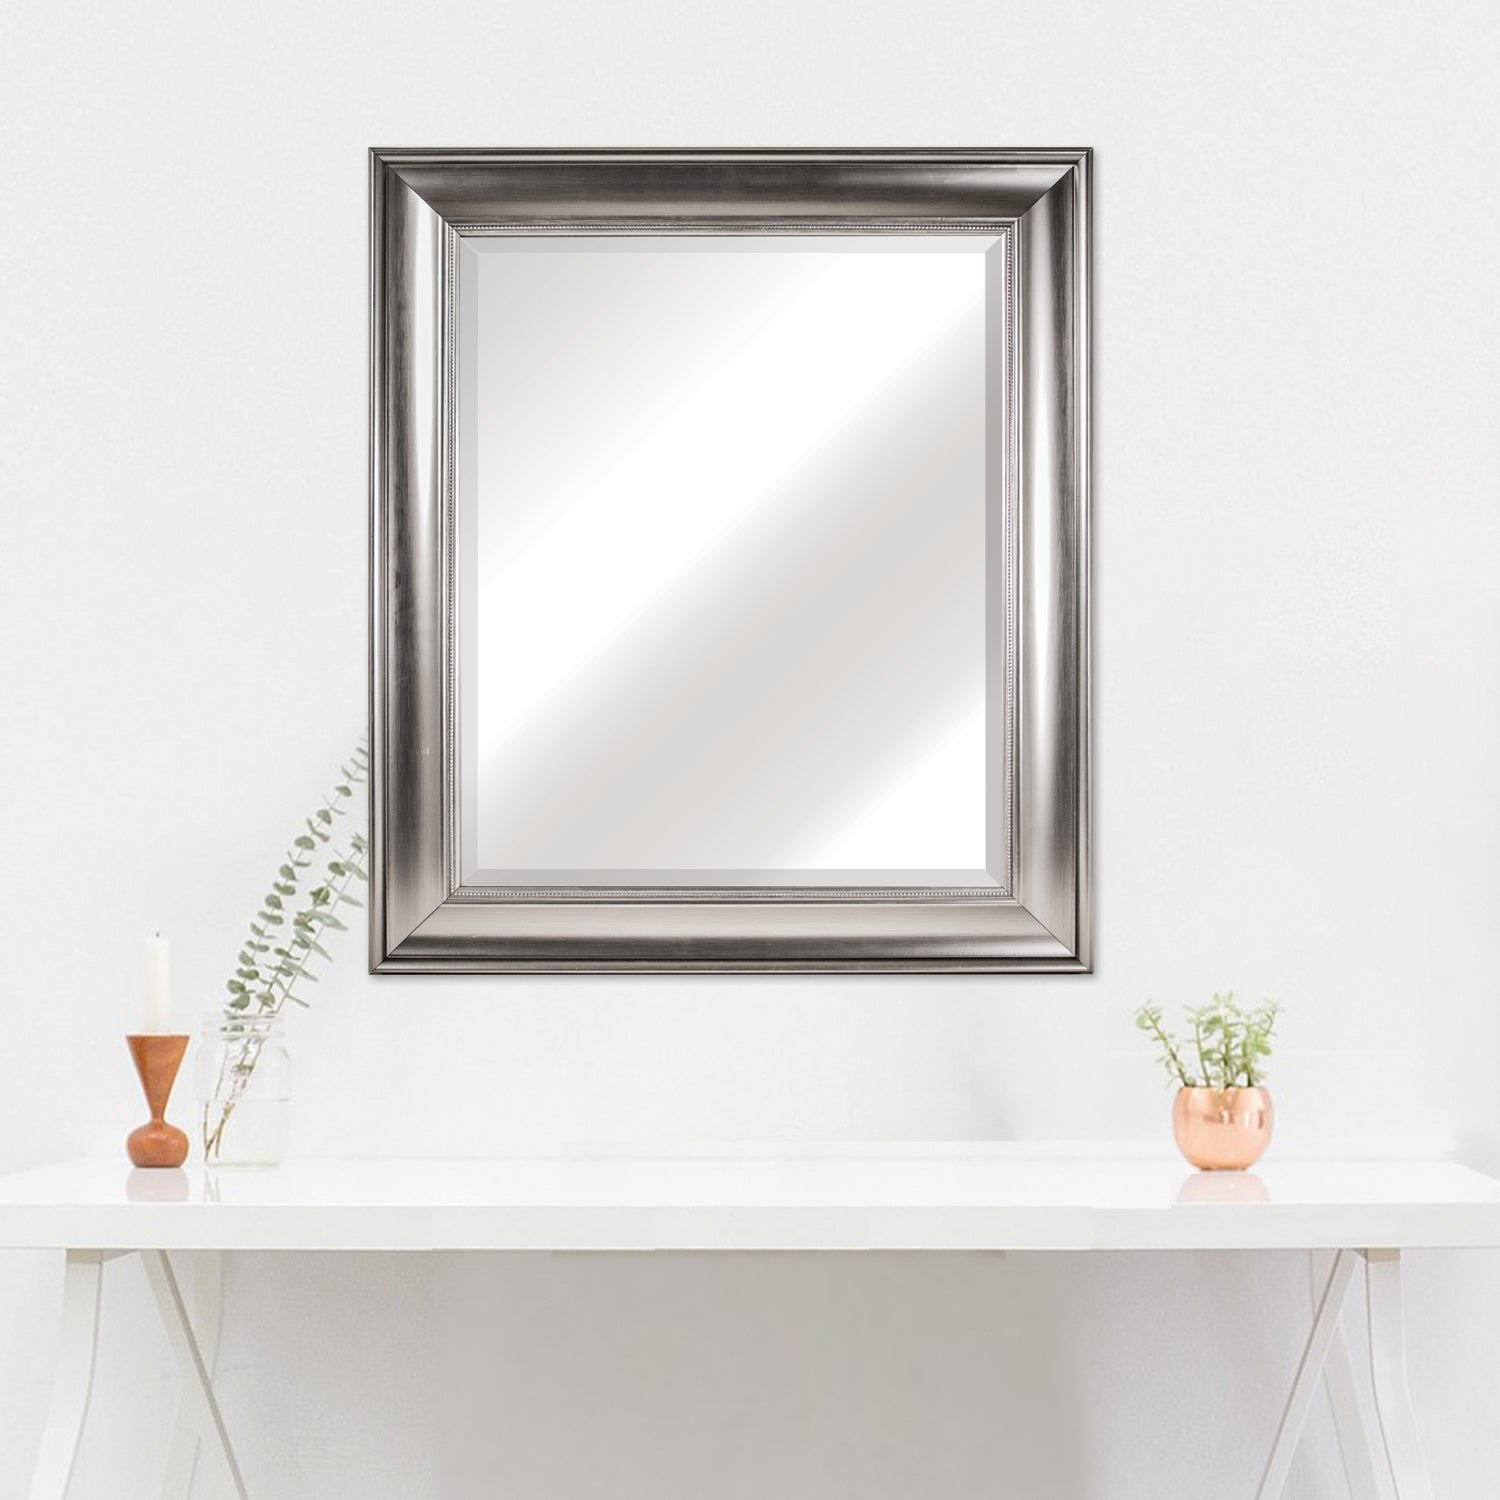 American Art Decor Clarence Medium Rectangular Silver Textured Accent Framed Beveled Wall Vanity Mirror A On Sale Overstock 16565270